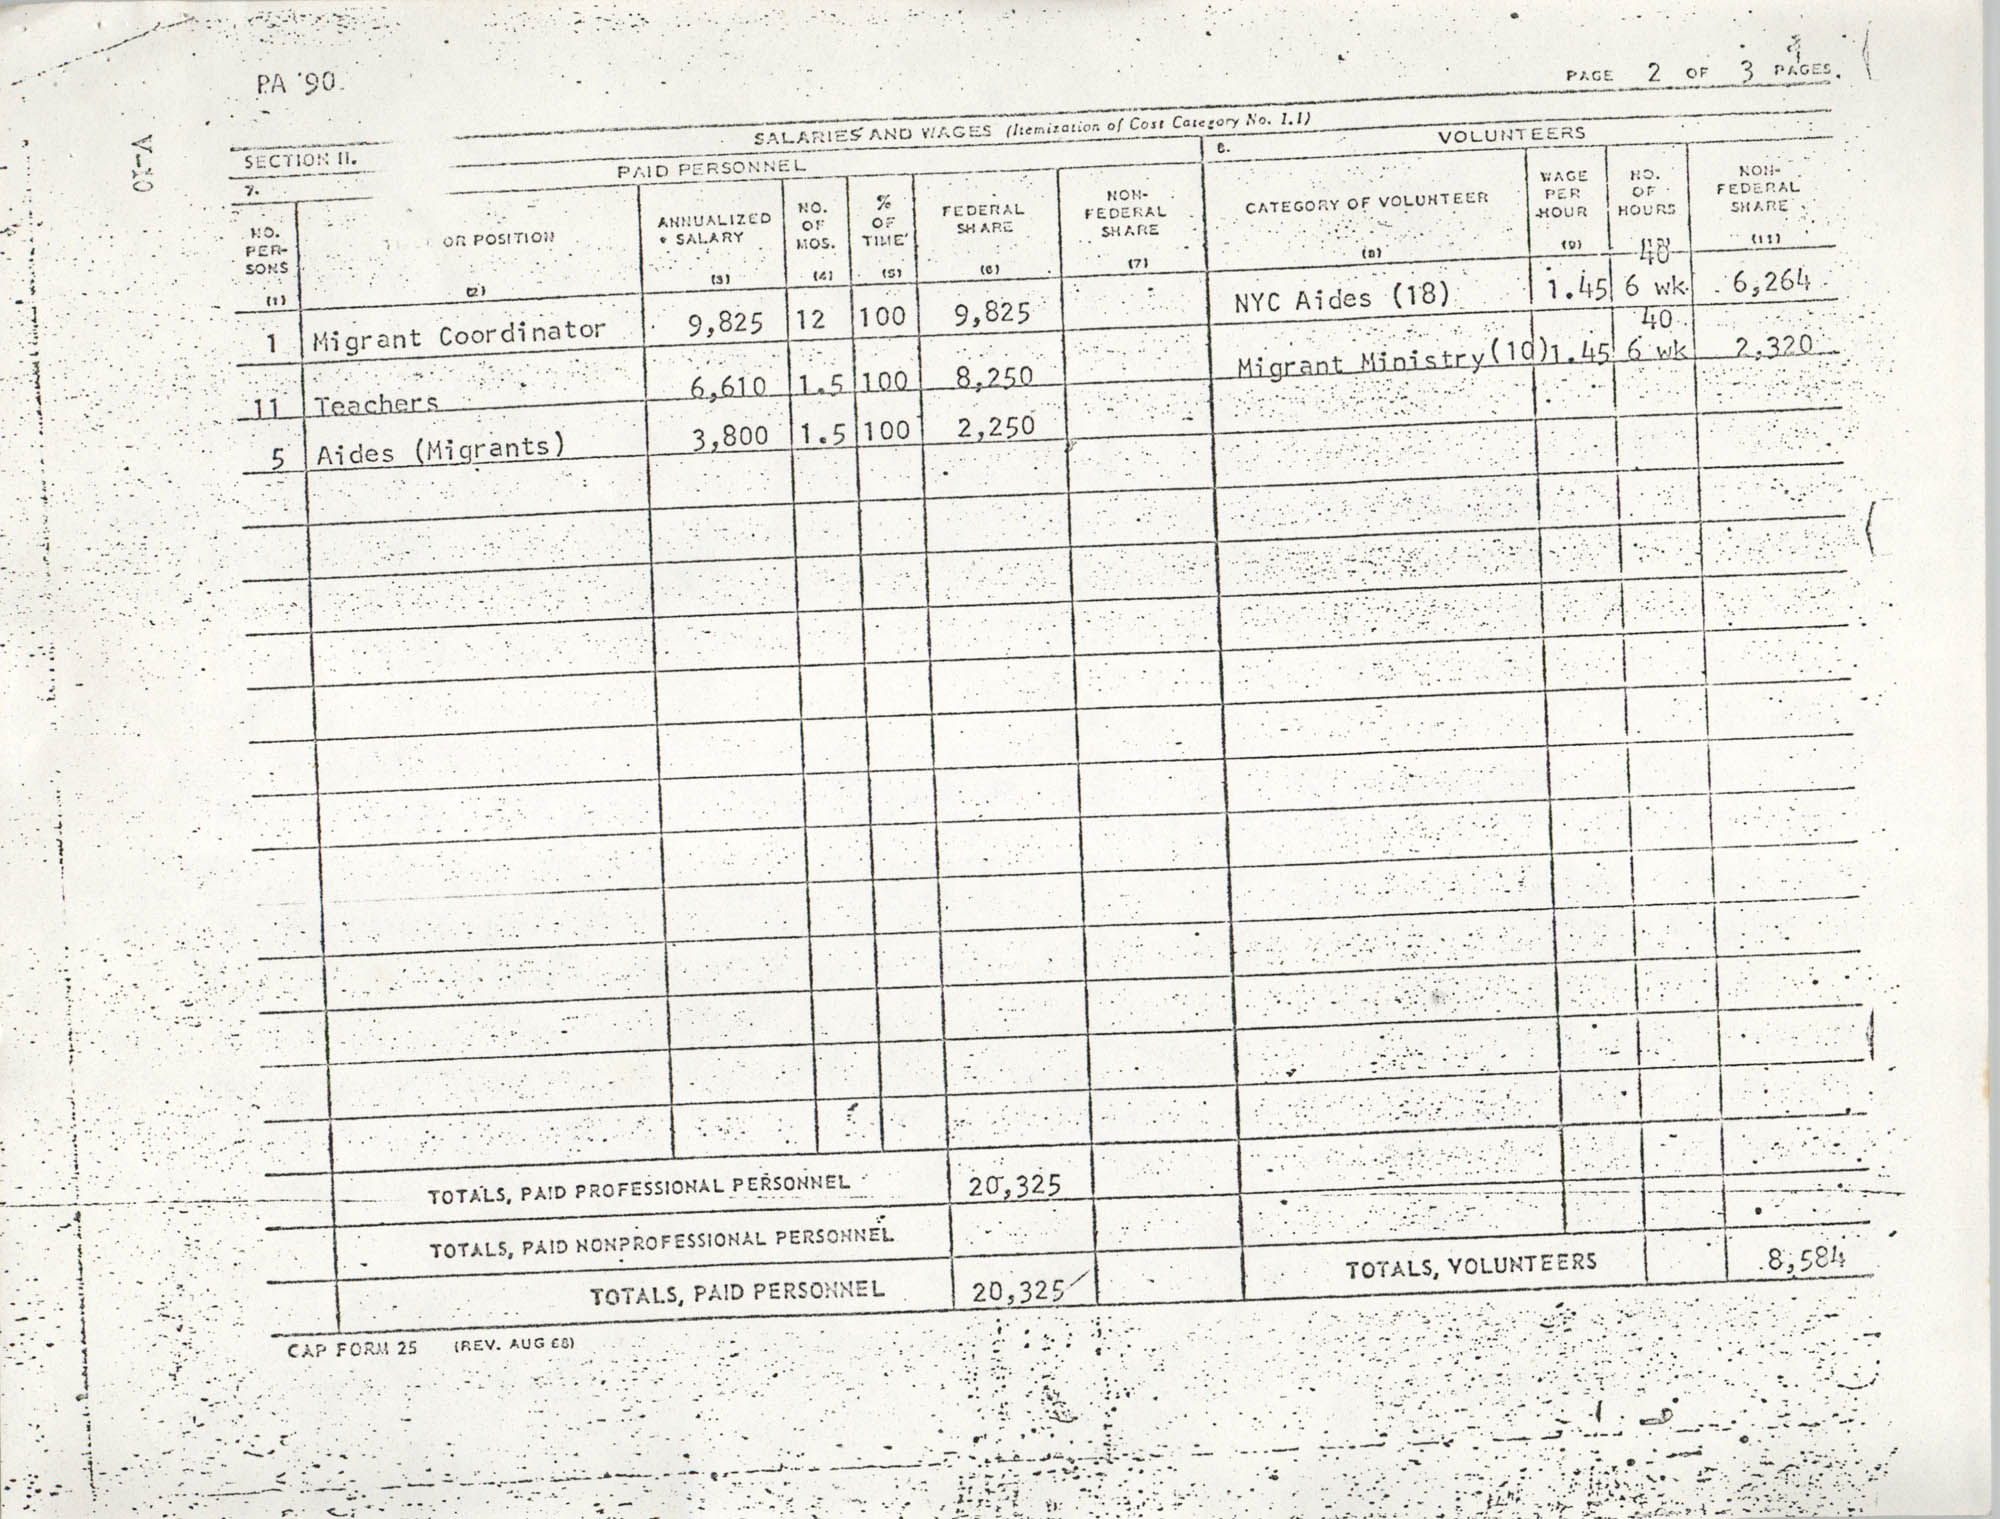 Migrant Day Care, Program Account Budget Forms, Page 2